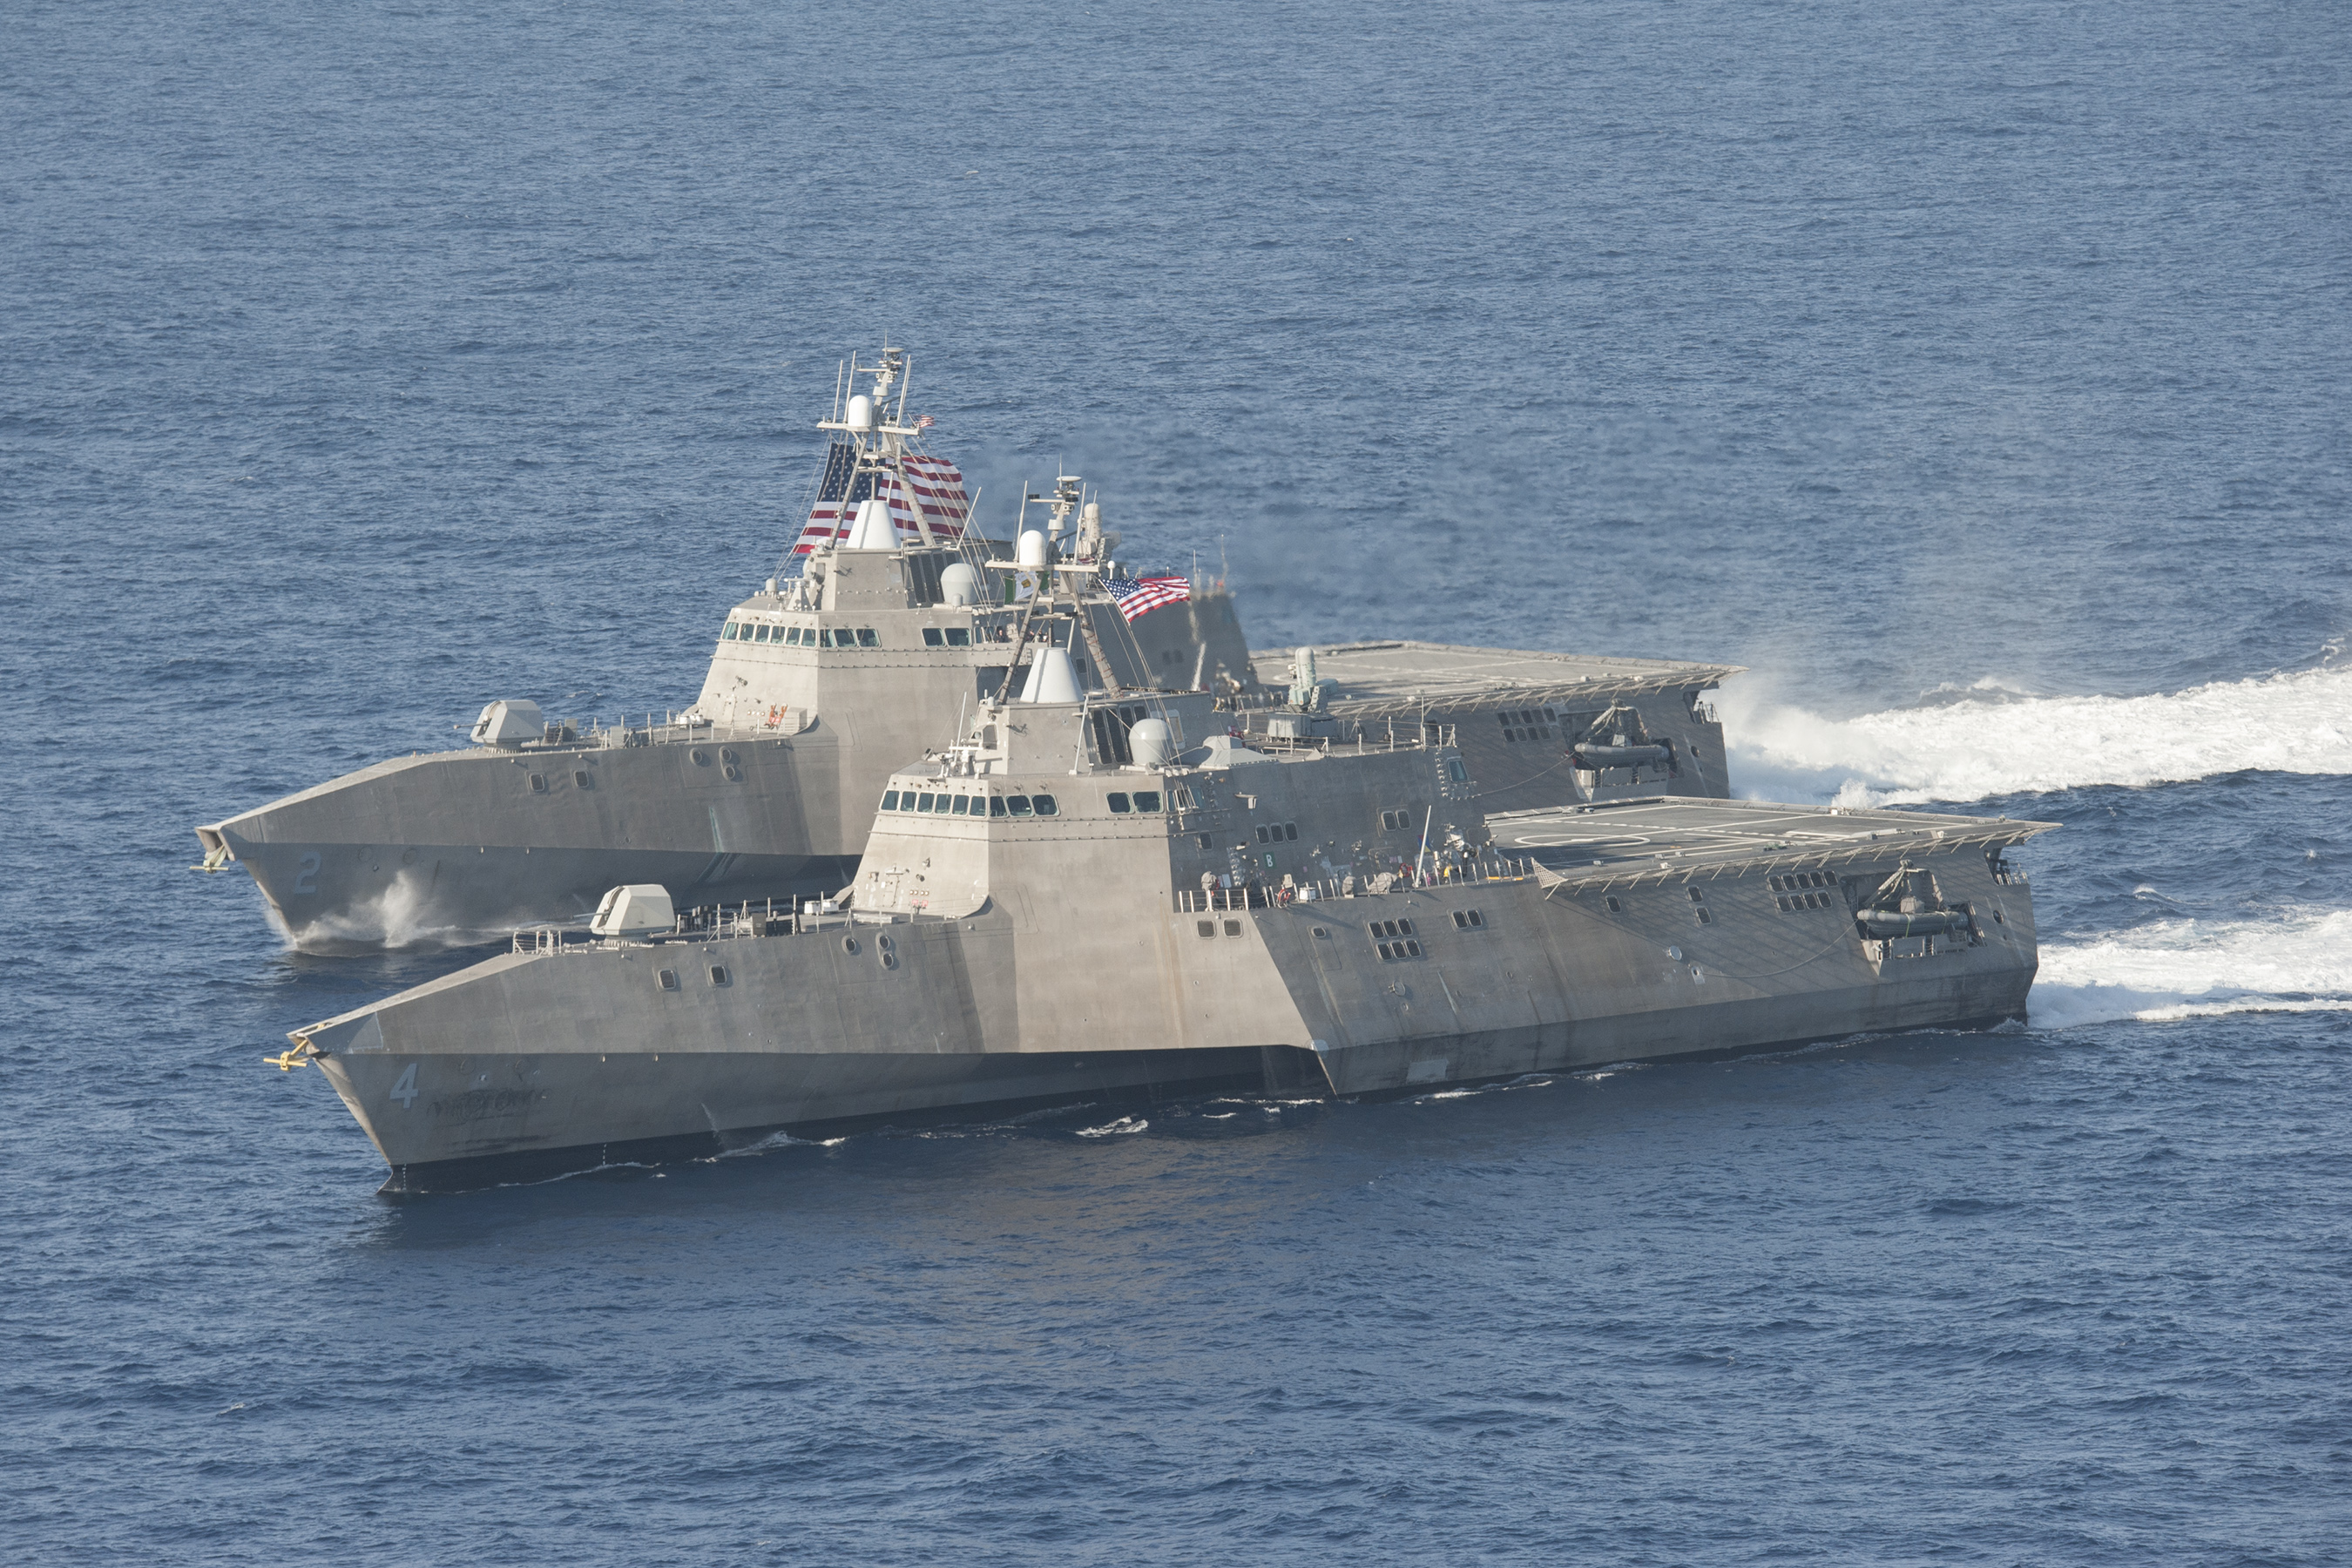 The littoral combat ships USS Independence (LCS 2), back, and USS Coronado (LCS 4) are underway in the Pacific Ocean in April 2014. US Navy photo.